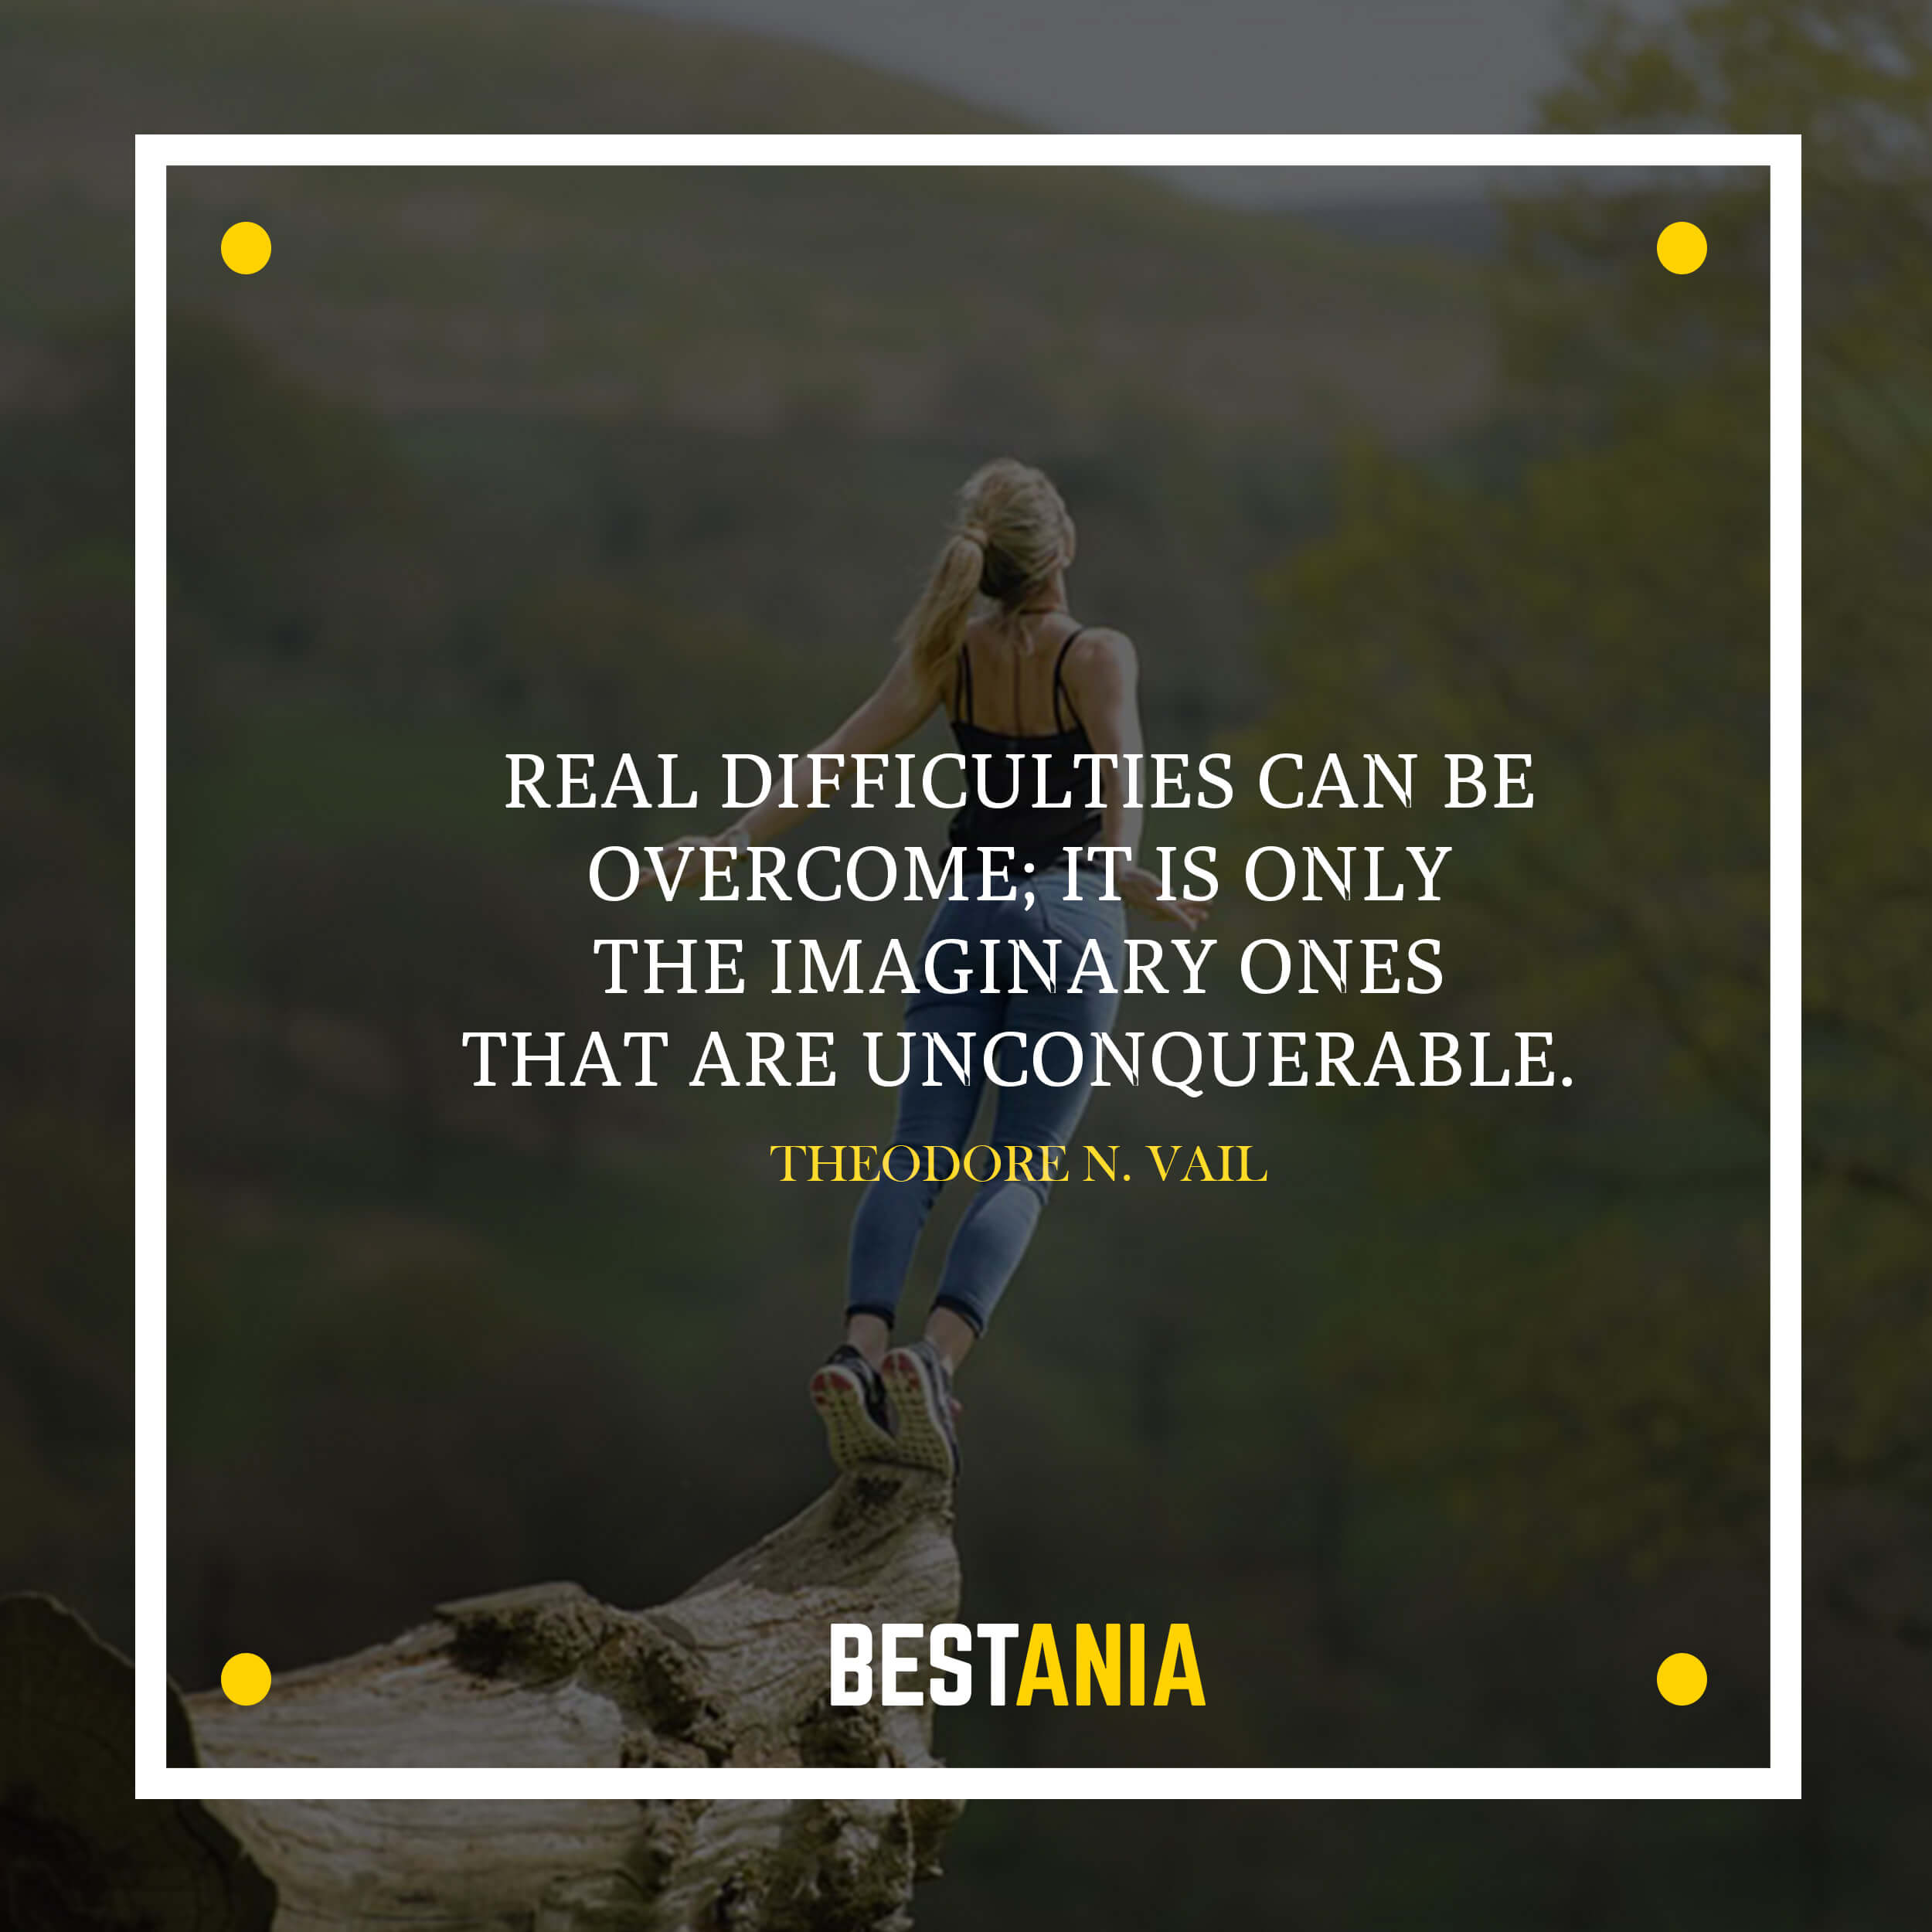 Real difficulties can be overcome; it is only the imaginary ones that are unconquerable. –Theodore N. Vail